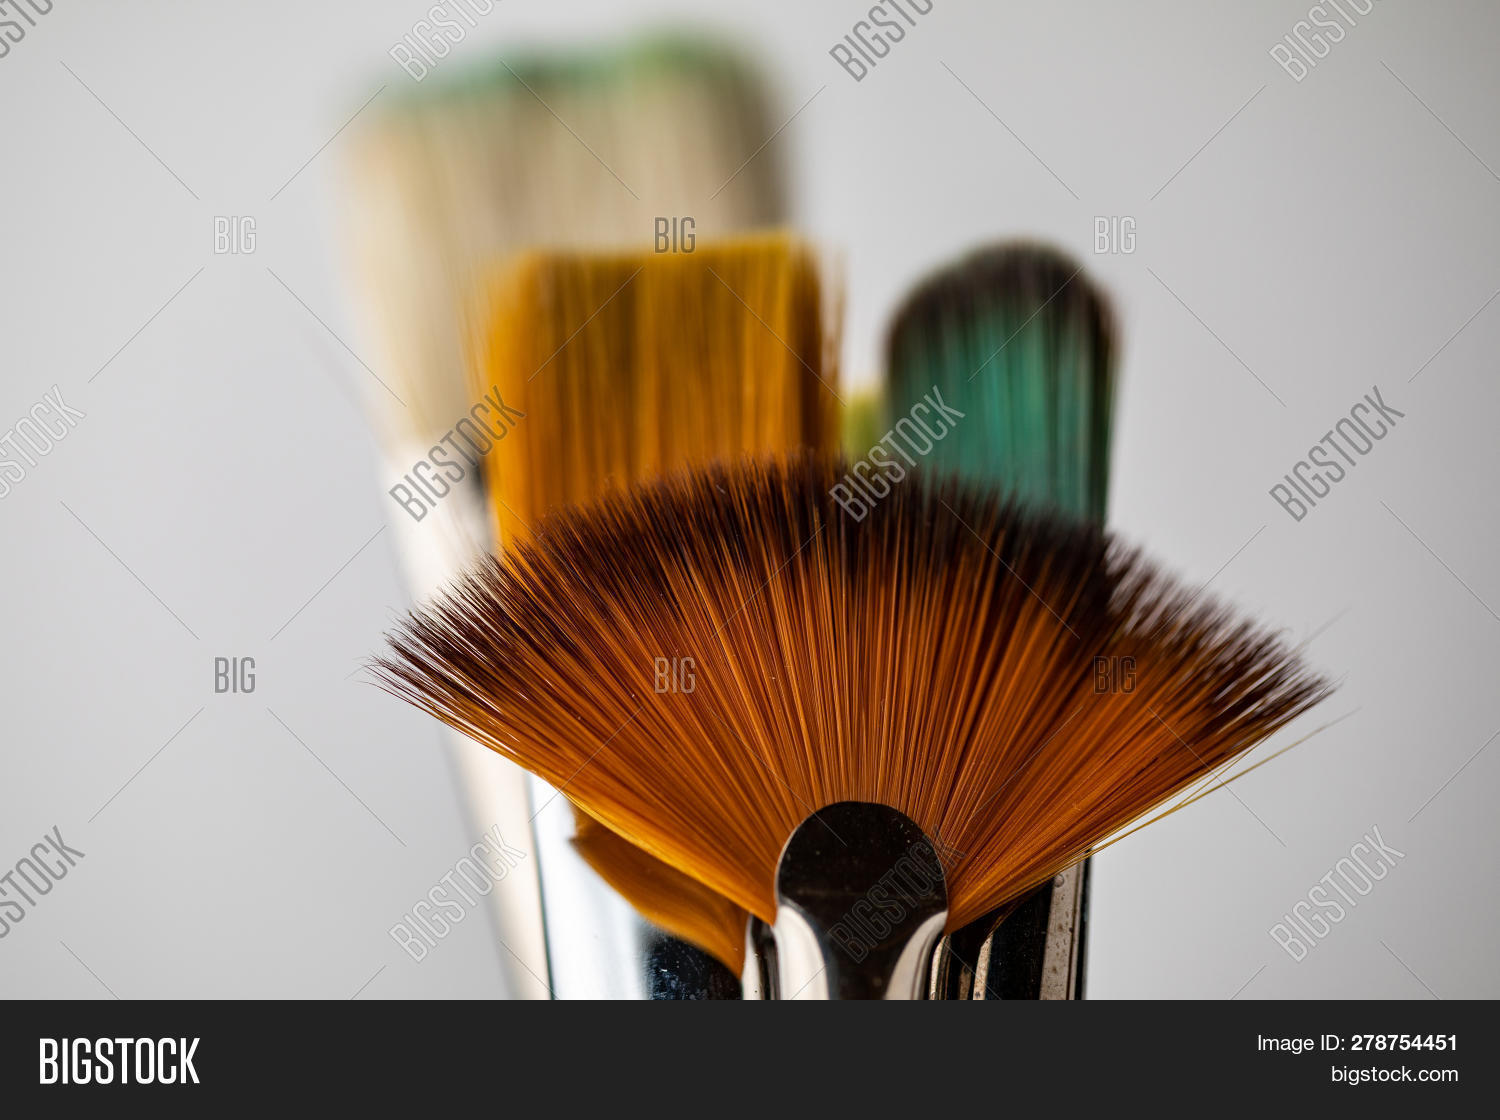 Several Multi-colored Artistic Brushes. Closeup Of Artistic Brushes